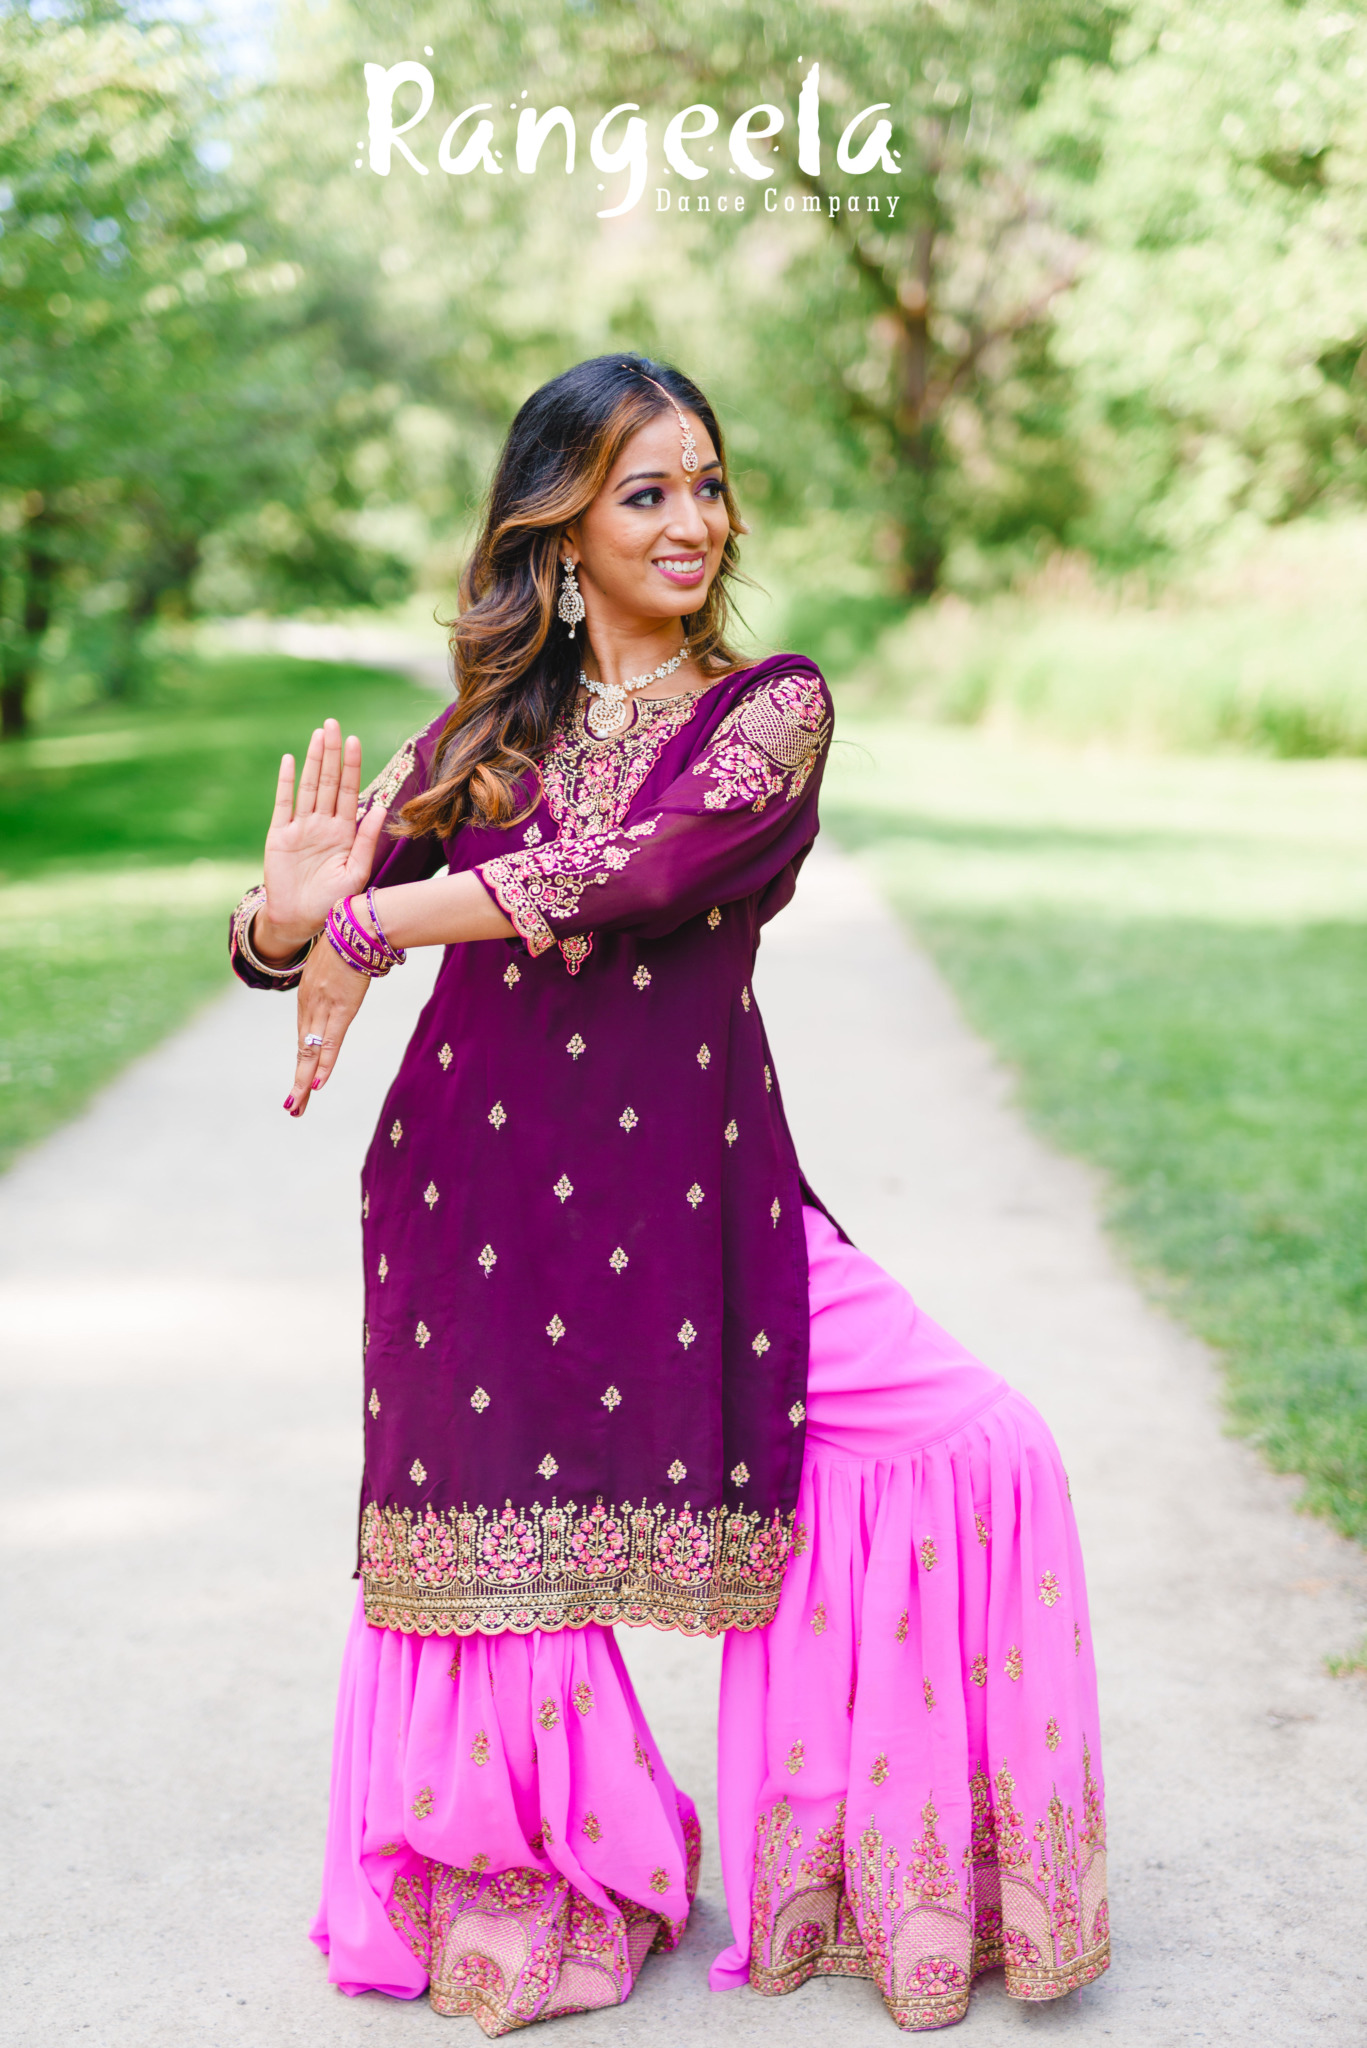 Priyanka posing in a traditional sharara salwar kameez in purple and pink, with gold decorations.